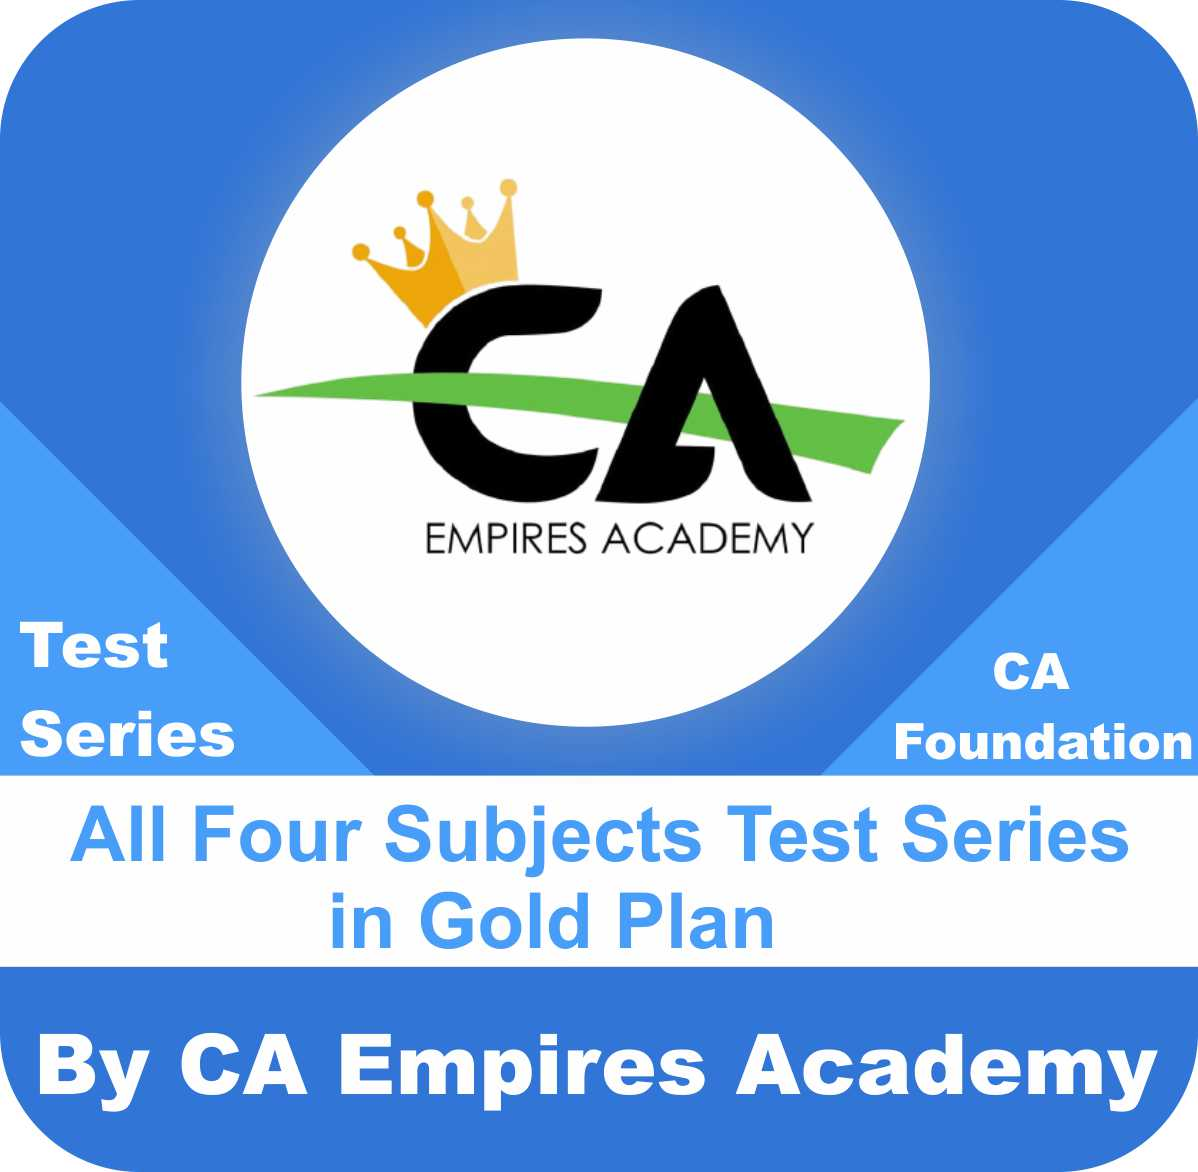 All Four Subjects Test Series in Gold Plan